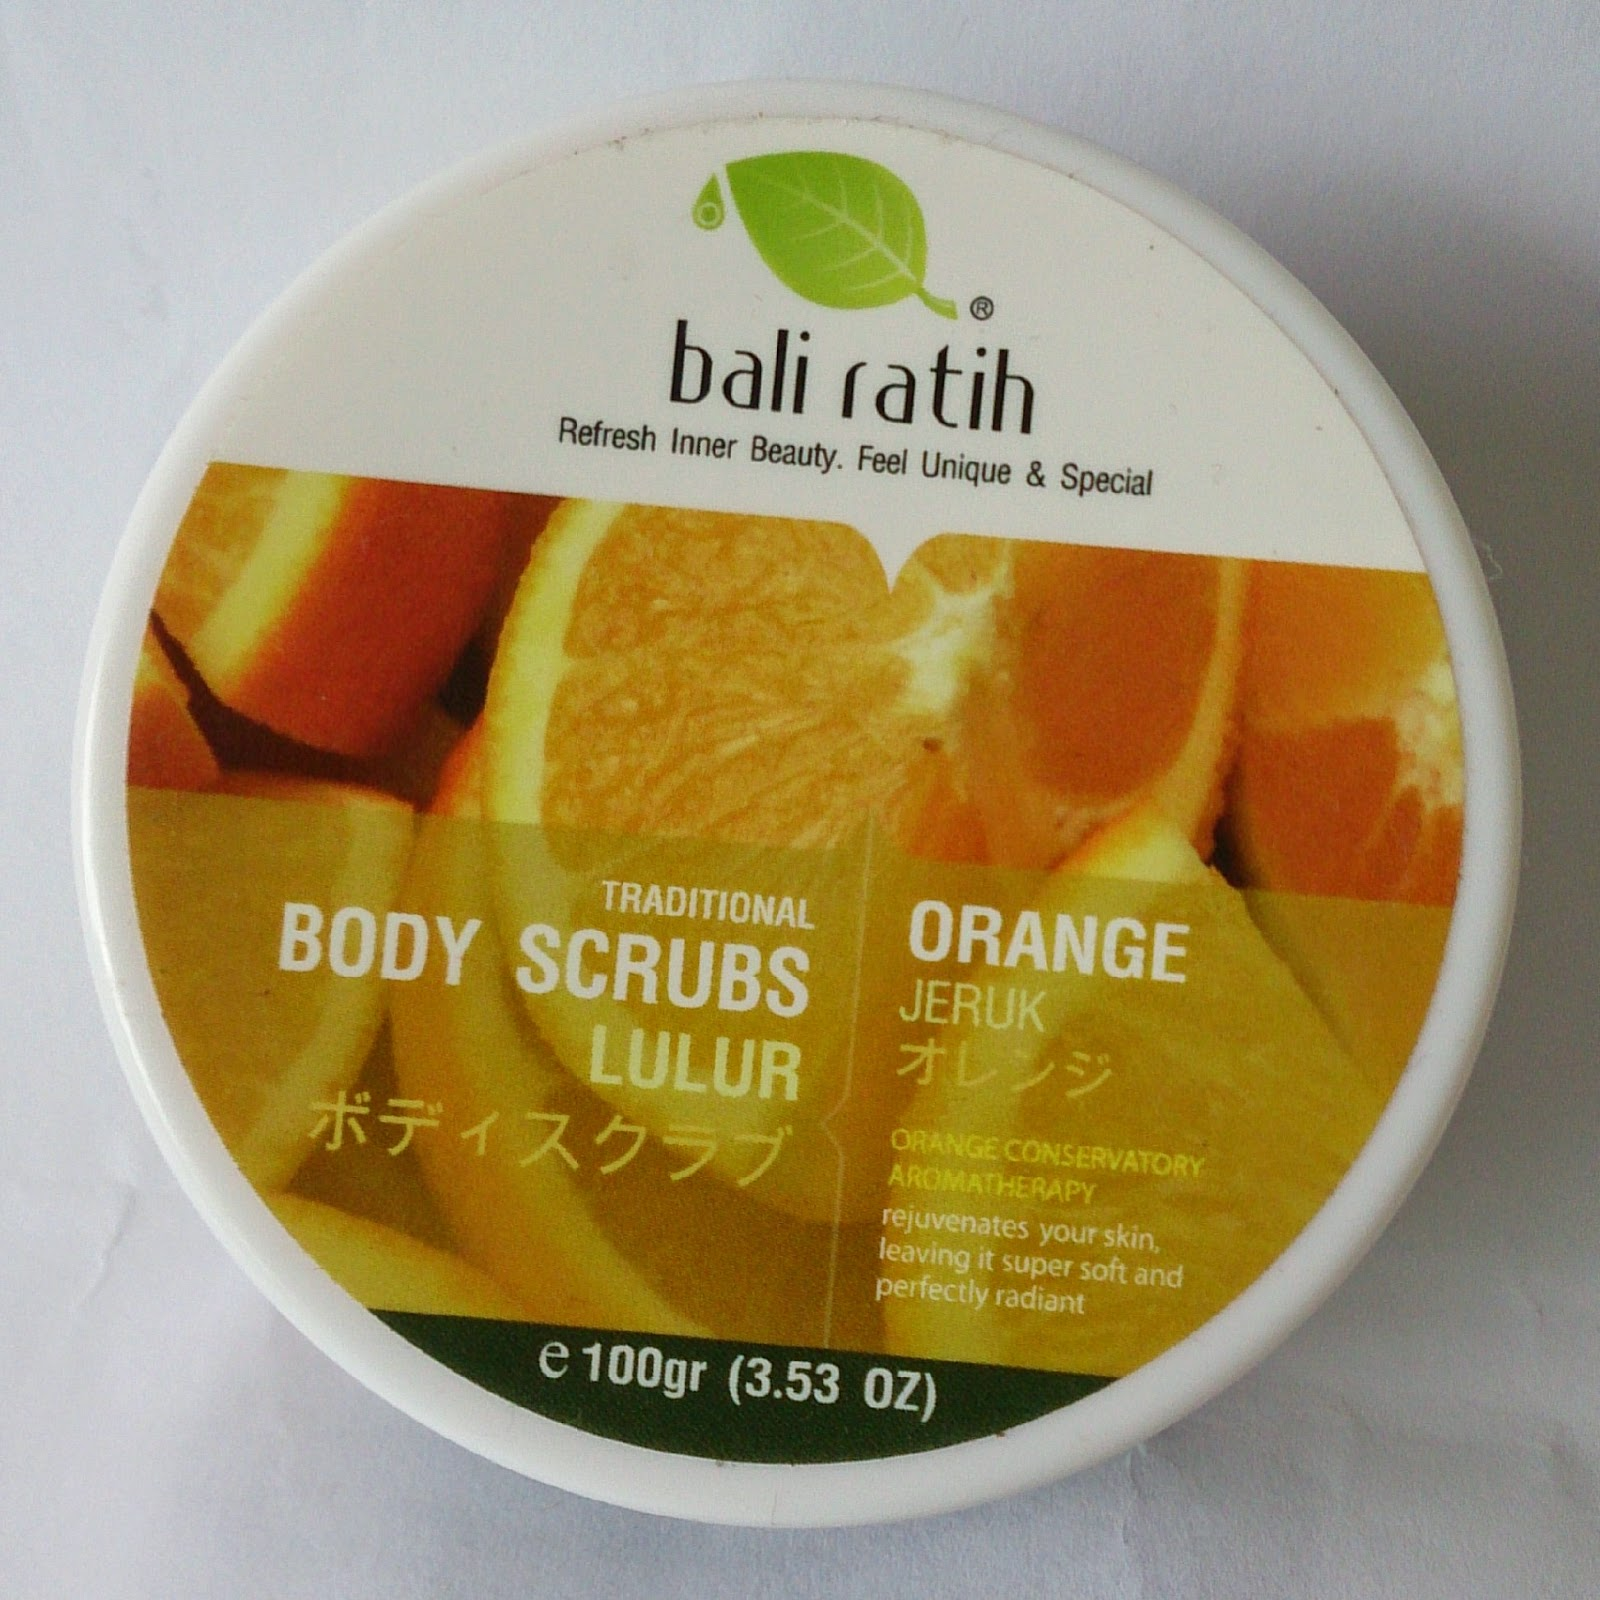 Amalina Skin Food Bali Ratih Body Scrubs Buy 1 Get Alus Green Tea Lulur Srub Natural Acid From Orange Drain The Excess Oil And Sweaty Dirt